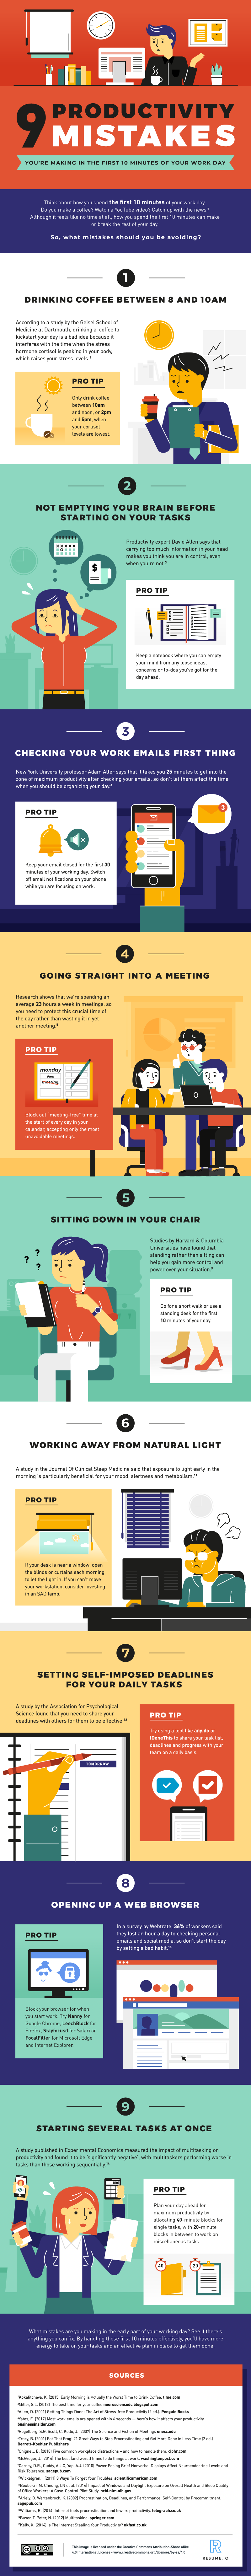 9 Productivity Mistakes You're Making in the First 10 Minutes of Your Day (Infographic)